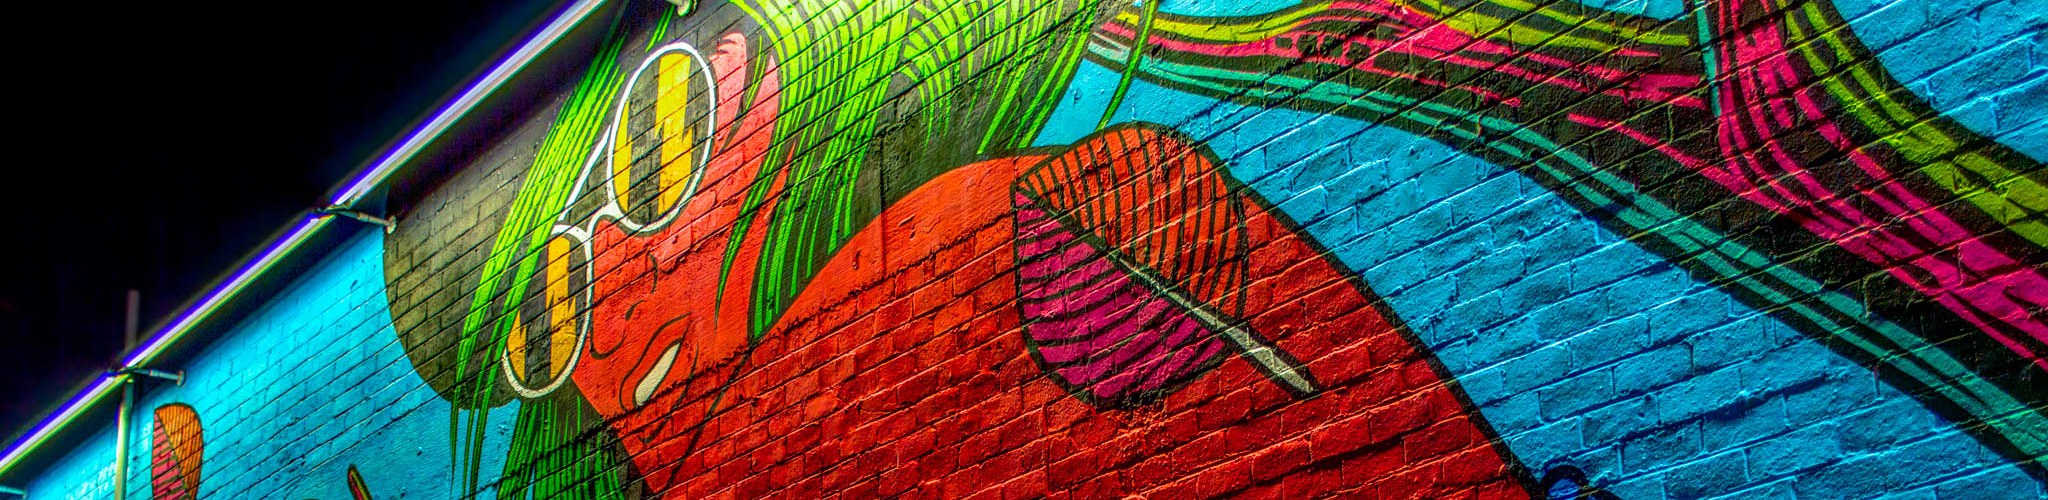 <p>A vivid summer mural painted on a wall in downtown Las Vegas Fine Art America</p>